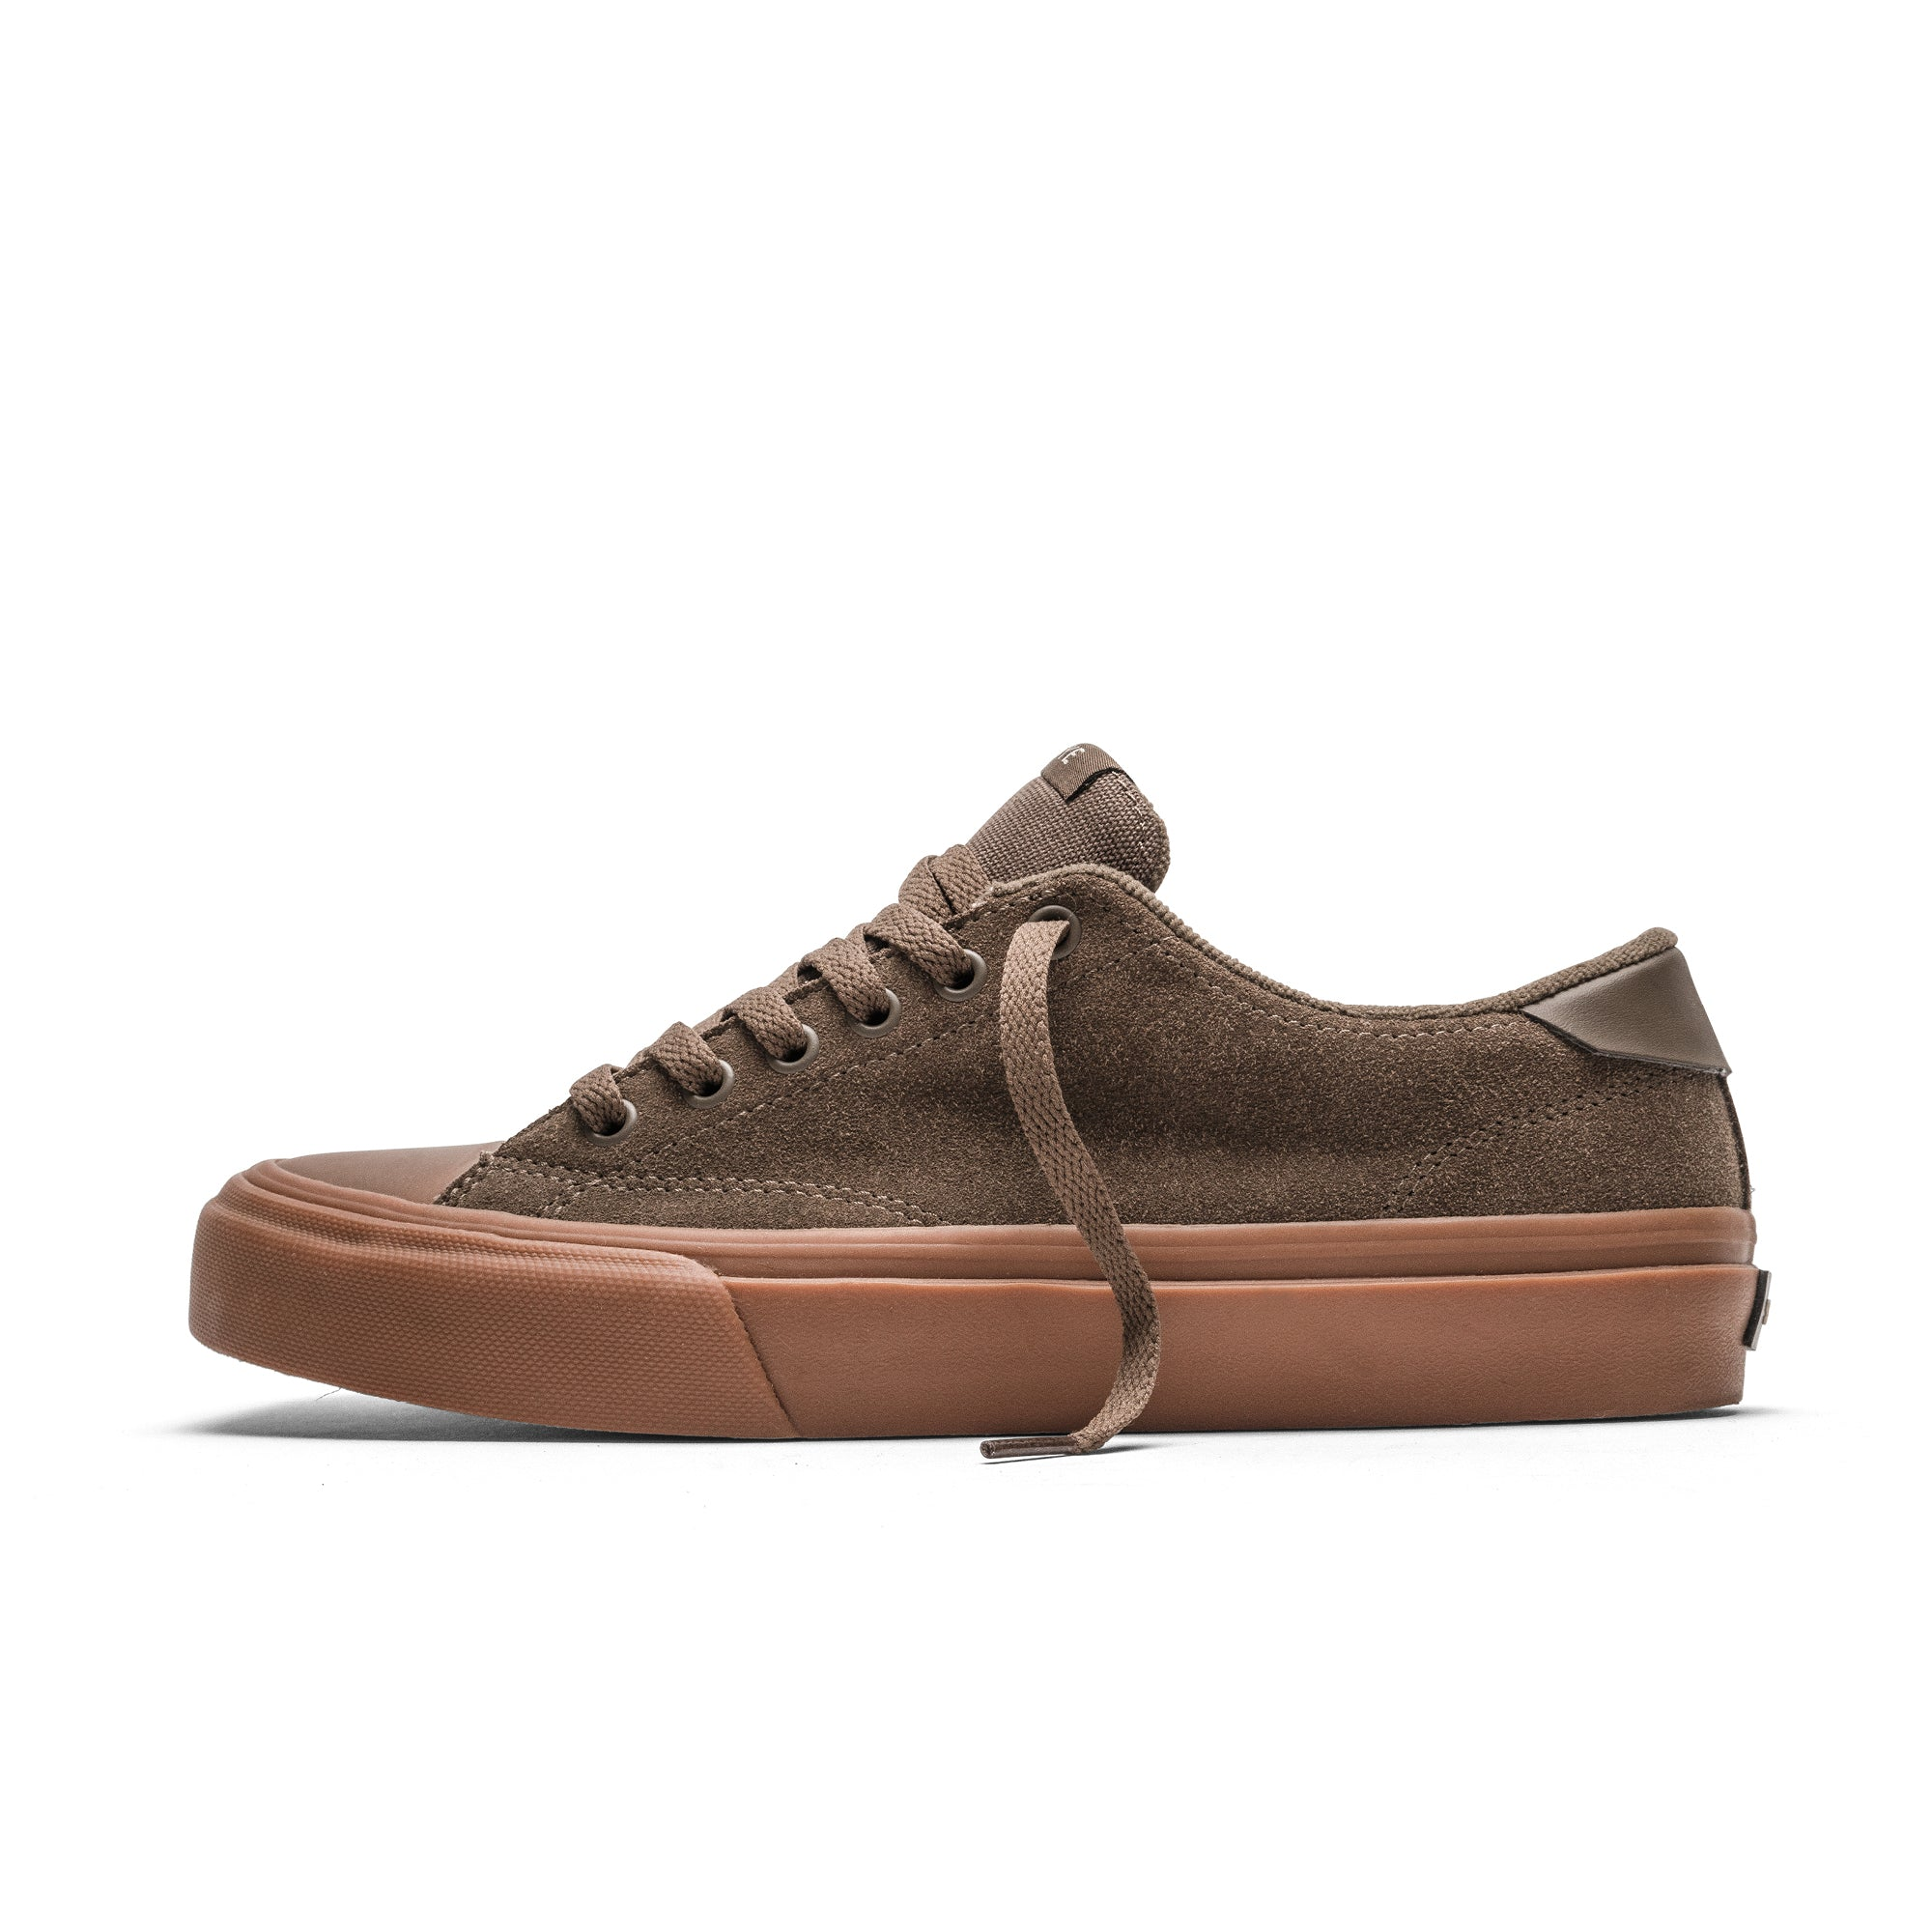 STANLEY - BROWN SUEDE